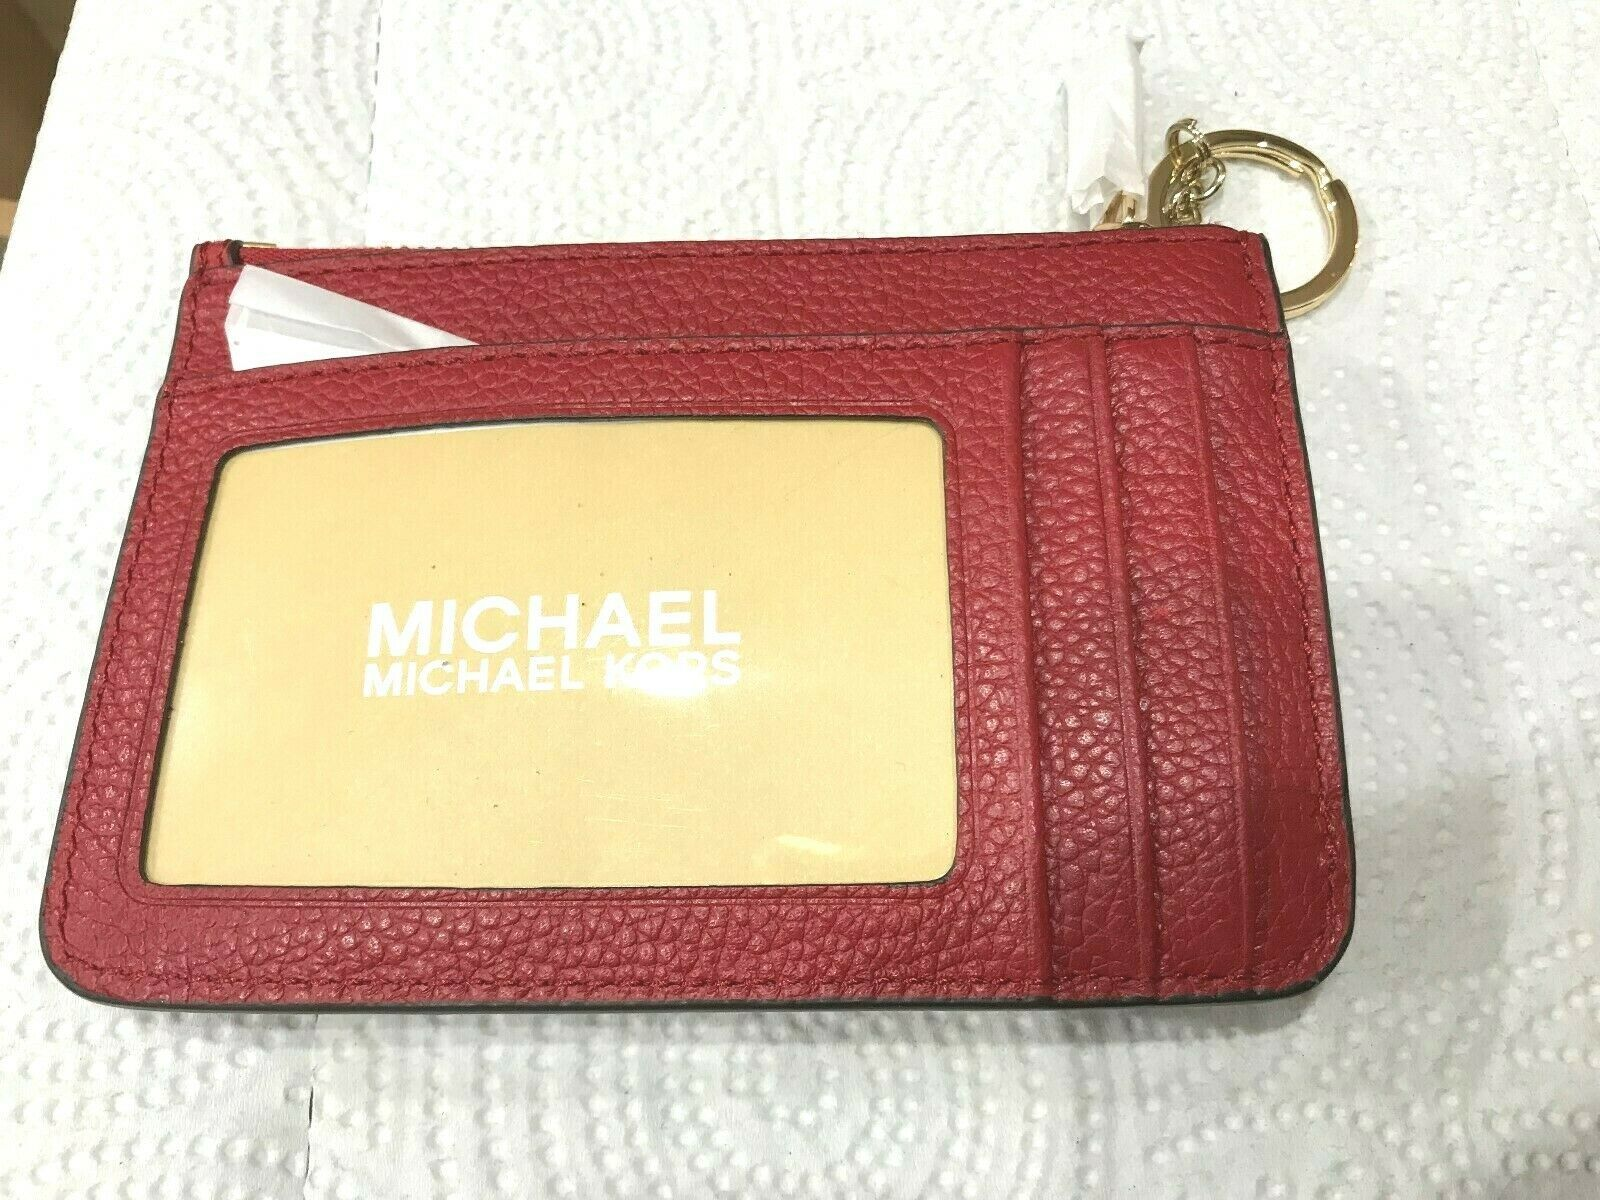 Michael Kors Adele Small Top Zip Coin Pouch Card Holder ID Key Ring Msrp 98.00